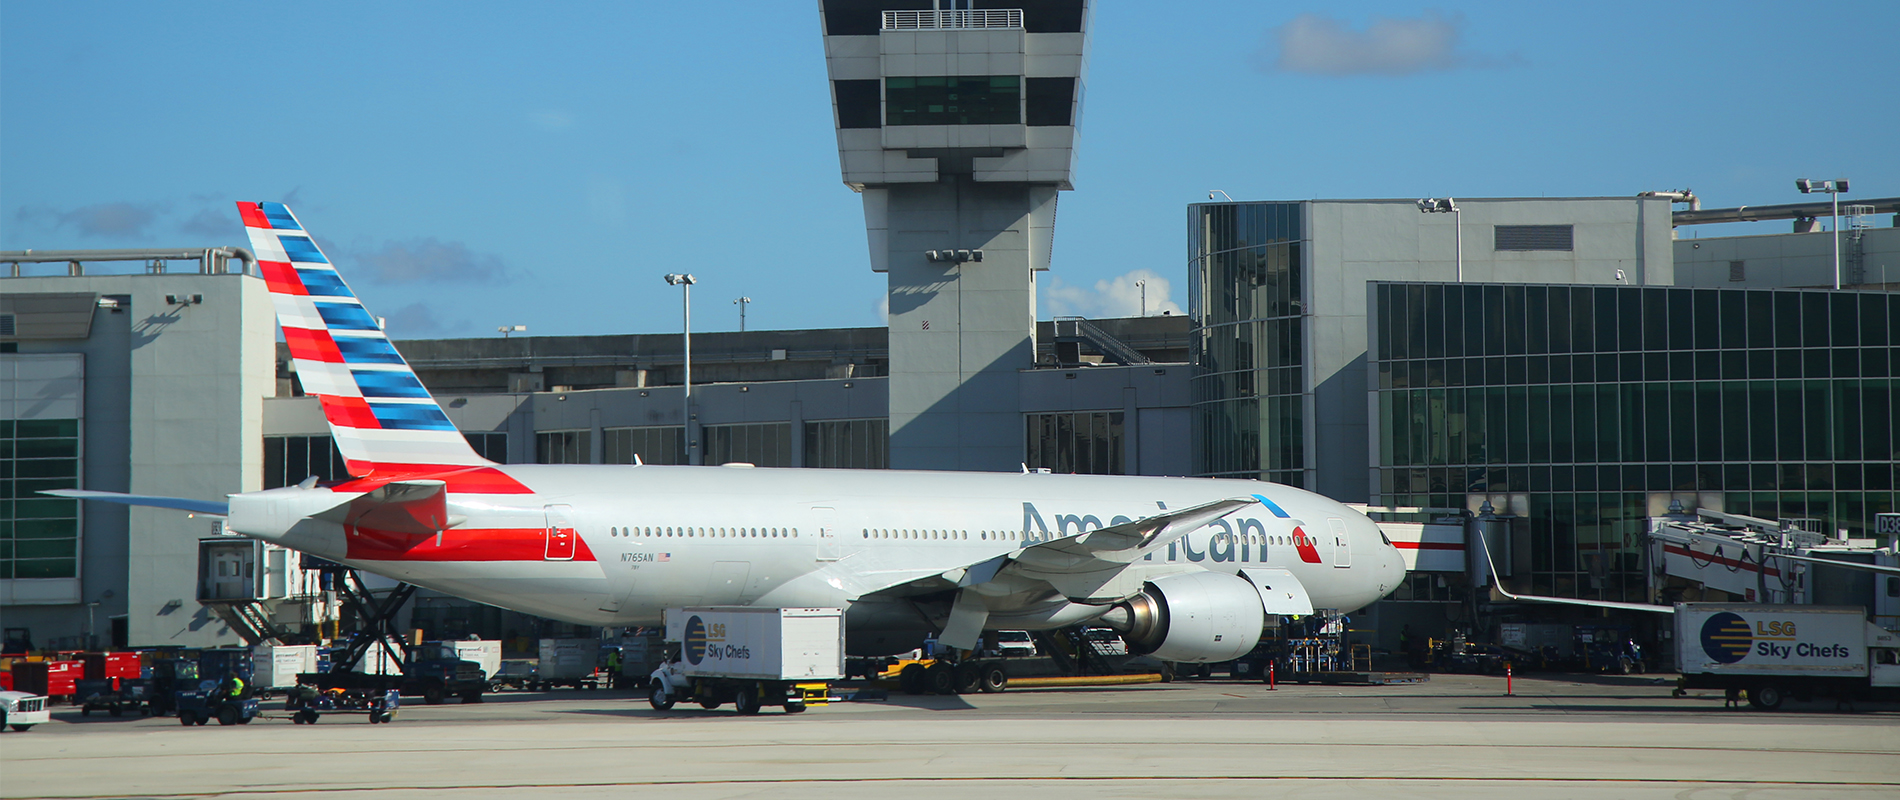 American Airline plane sits outside an air traffic control tower